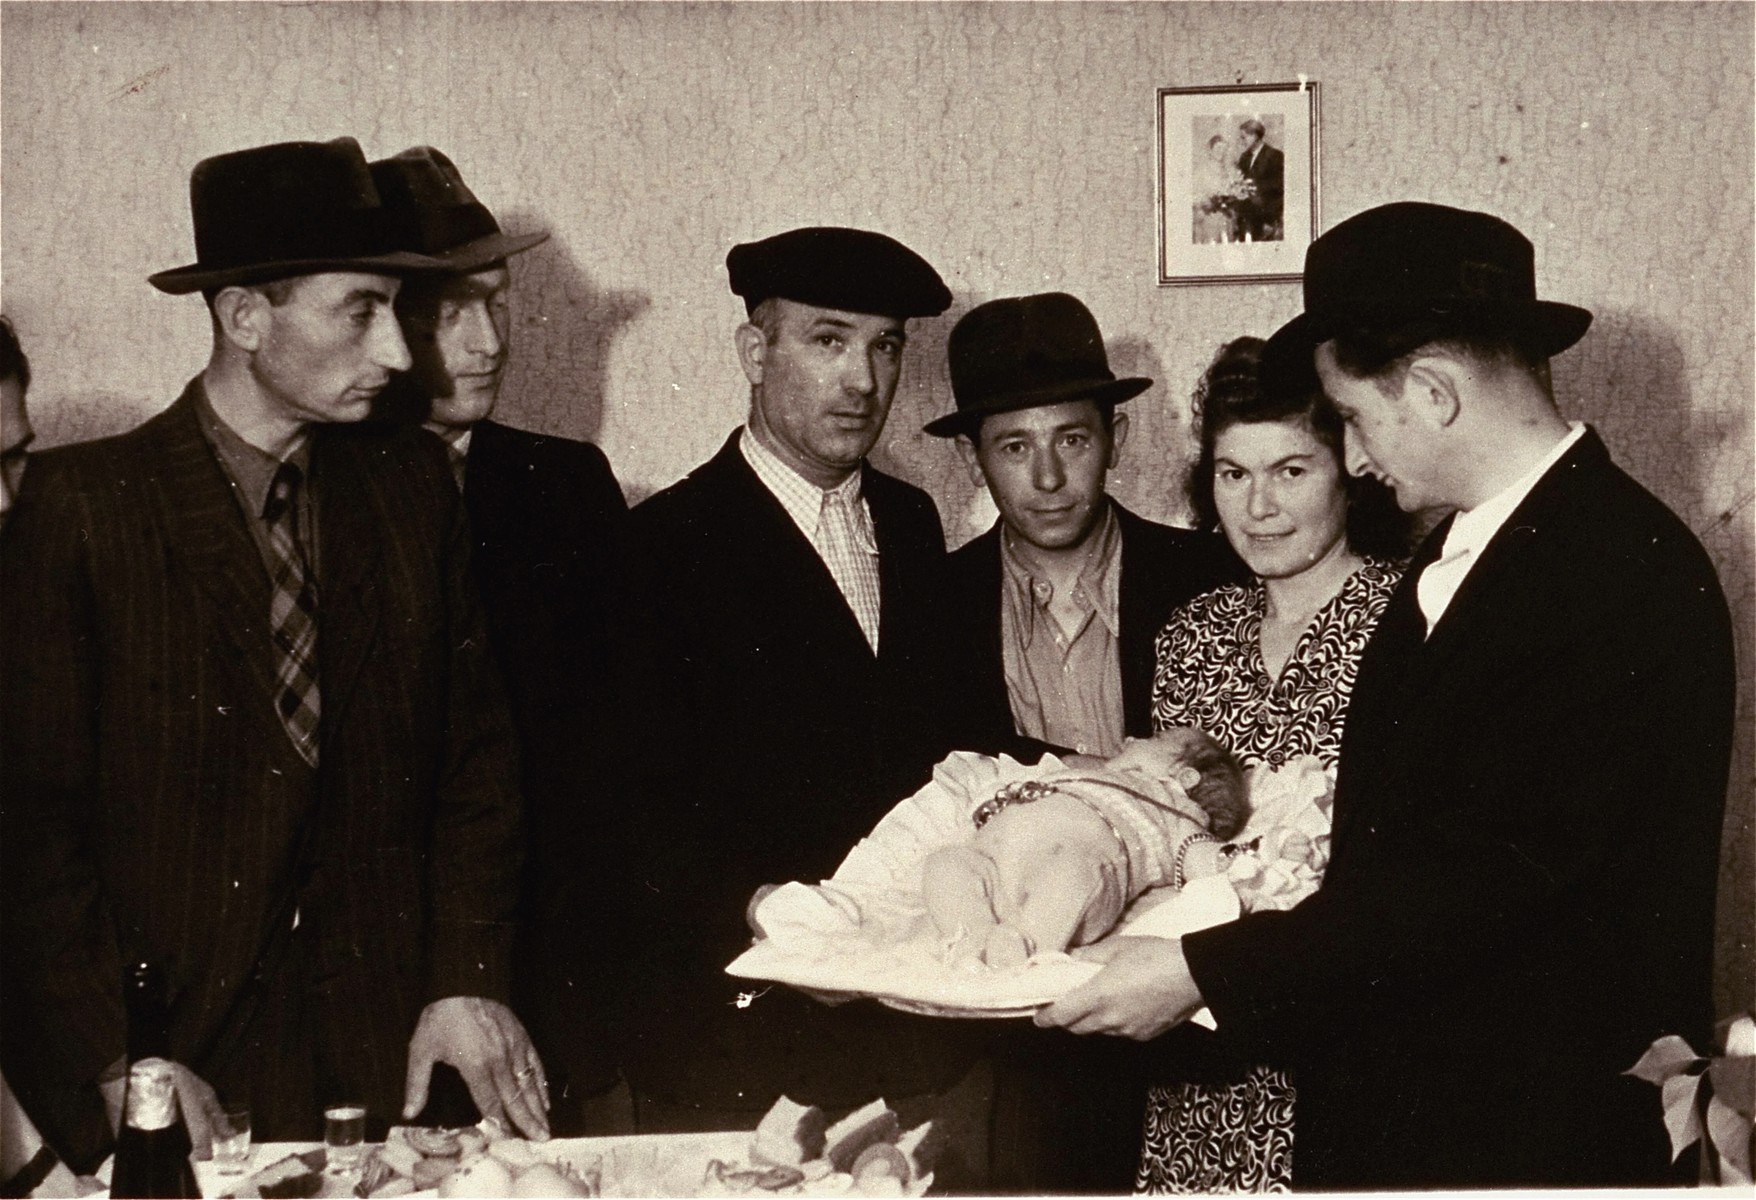 A family of Jewish DPs poses with their newborn at a circumcision ceremony in the Zeilsheim displaced persons camp.